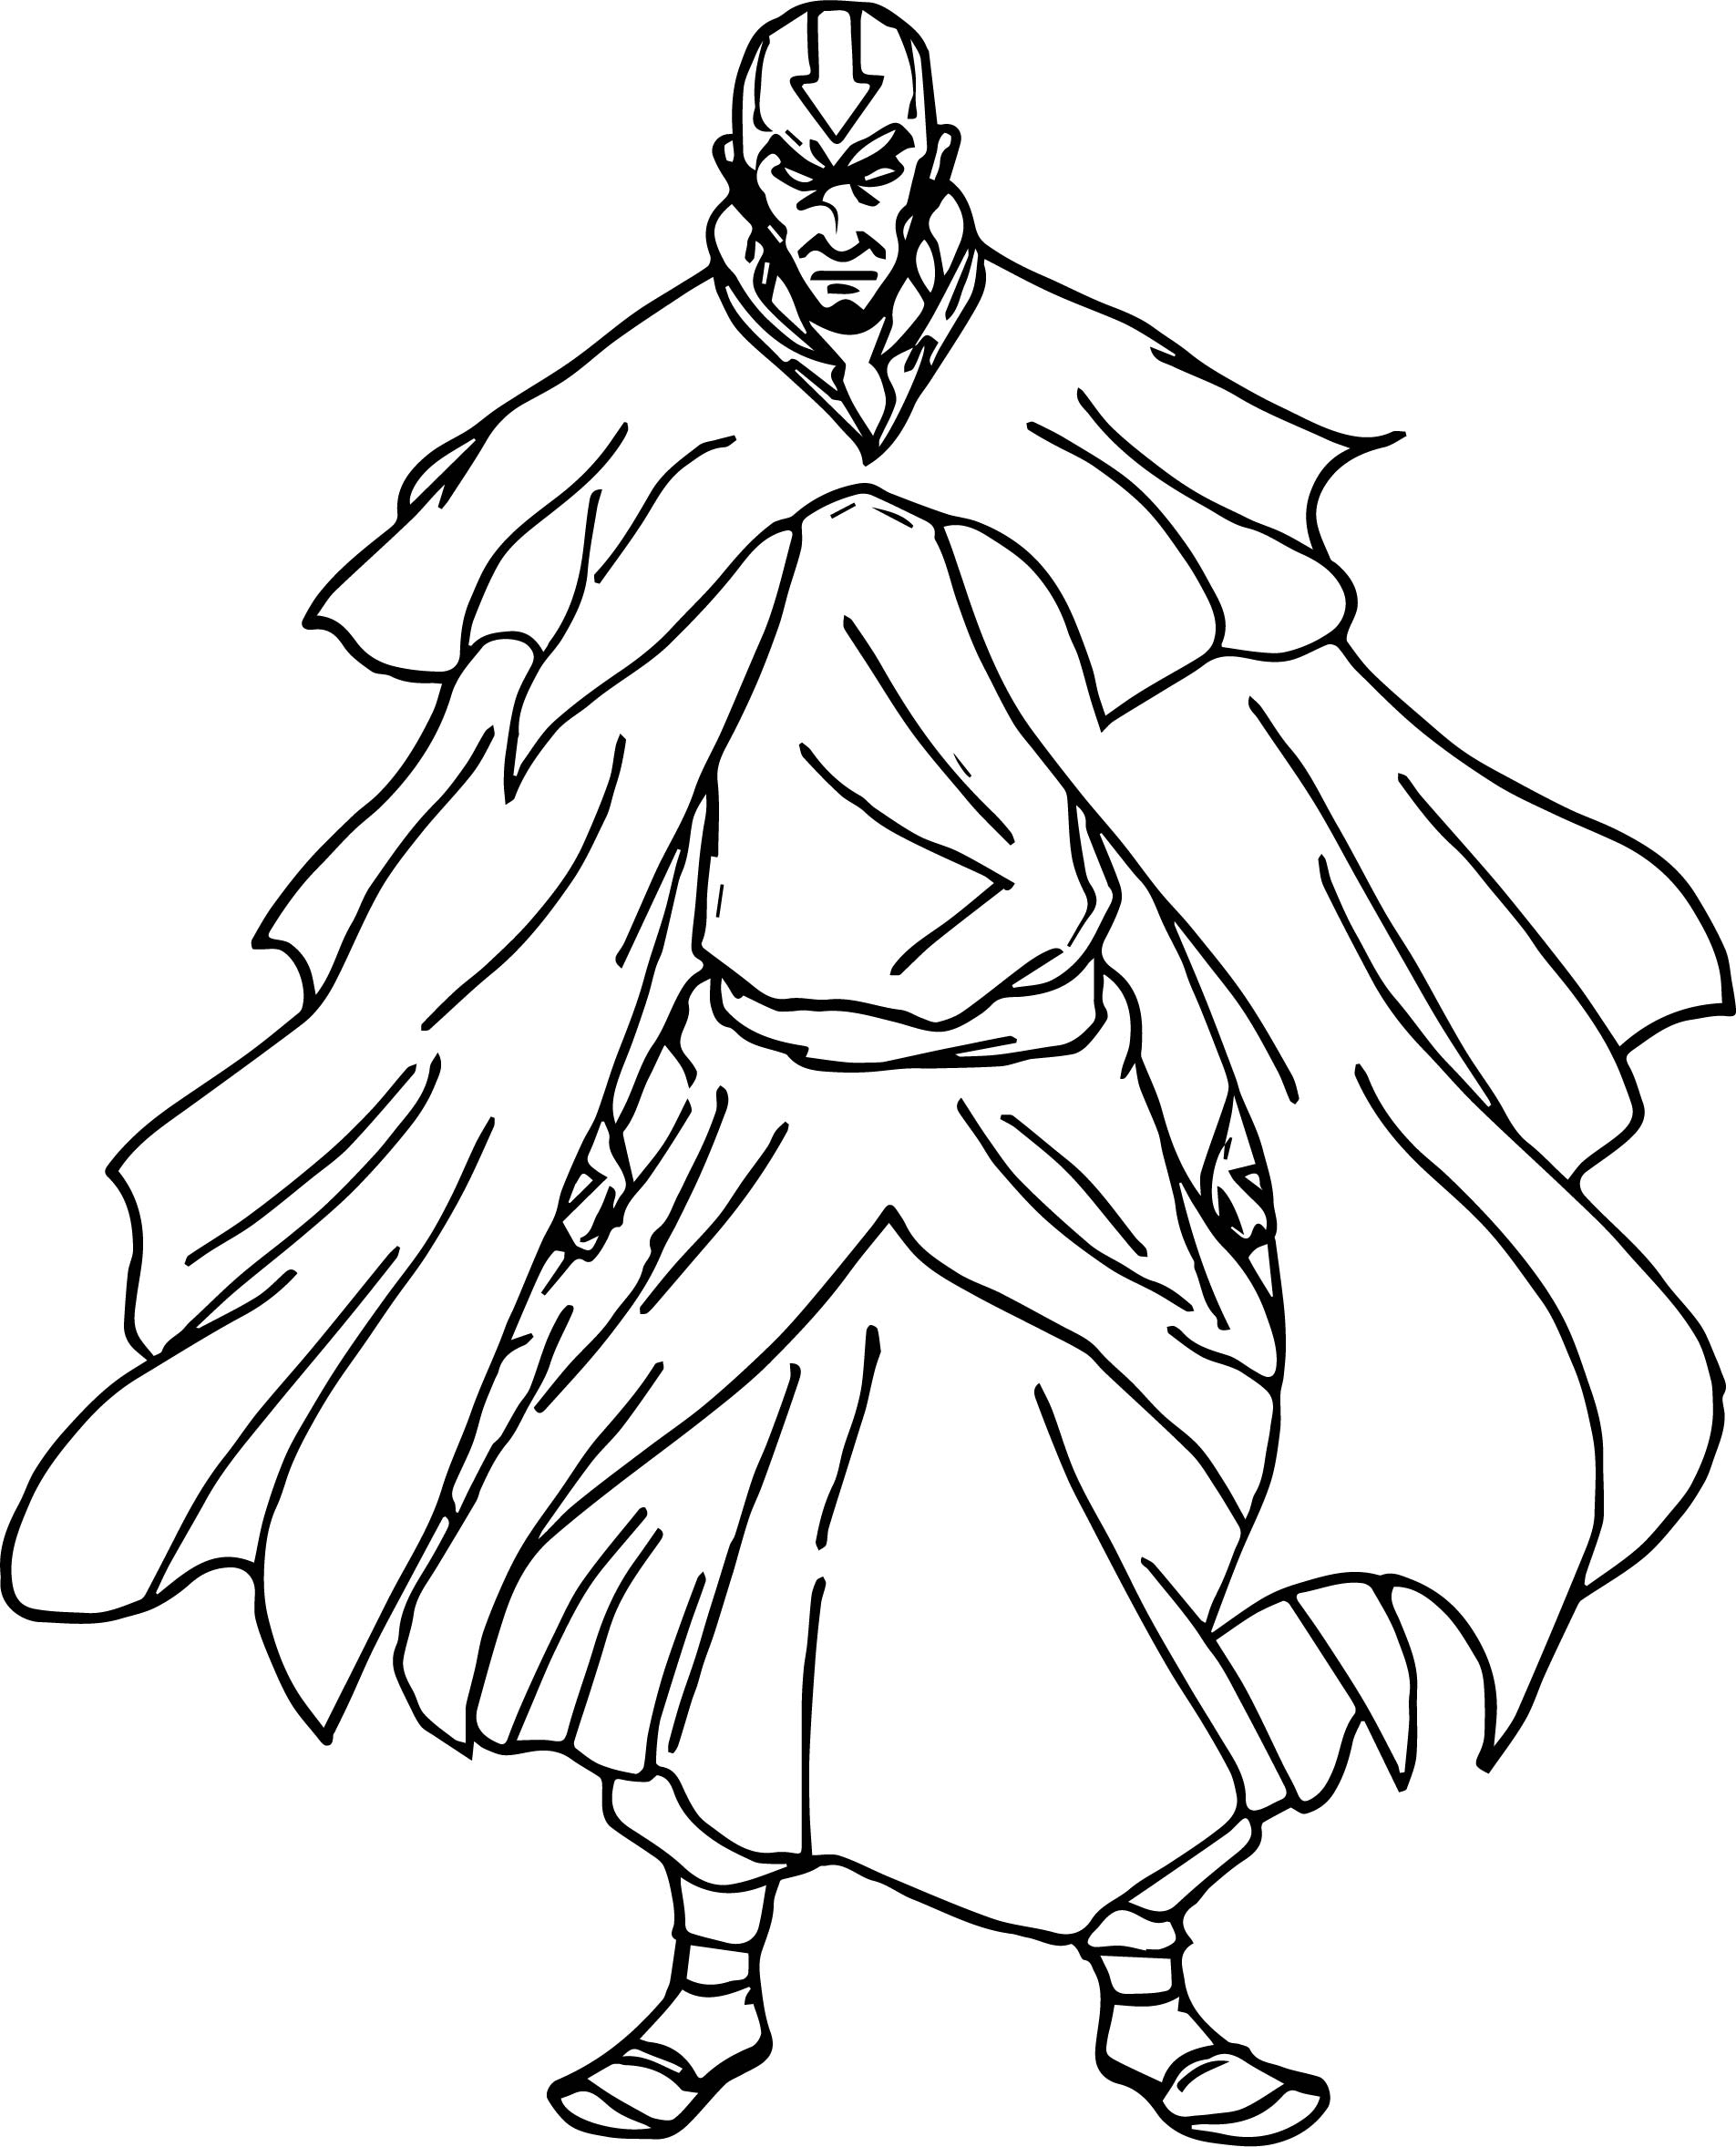 Avatar Coloring Pages at GetDrawings com | Free for personal